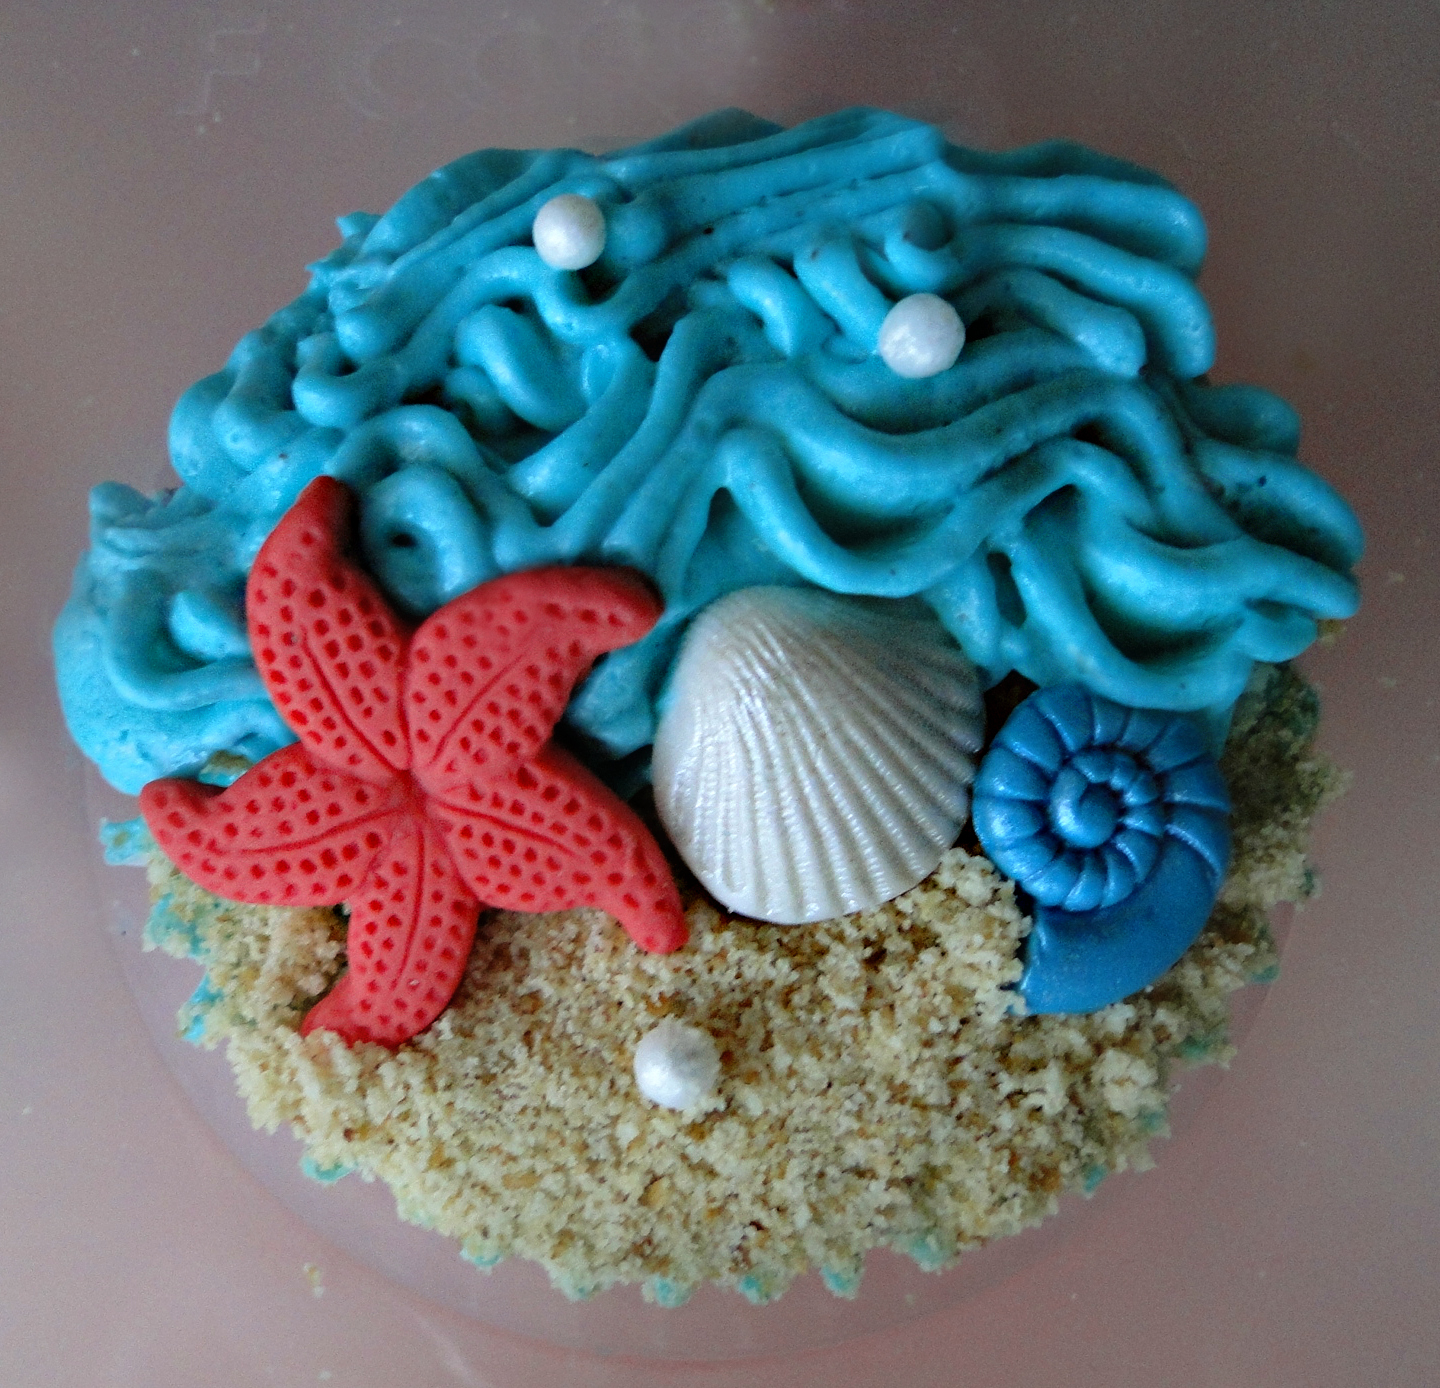 Cupcake Ideas With a Beach Theme